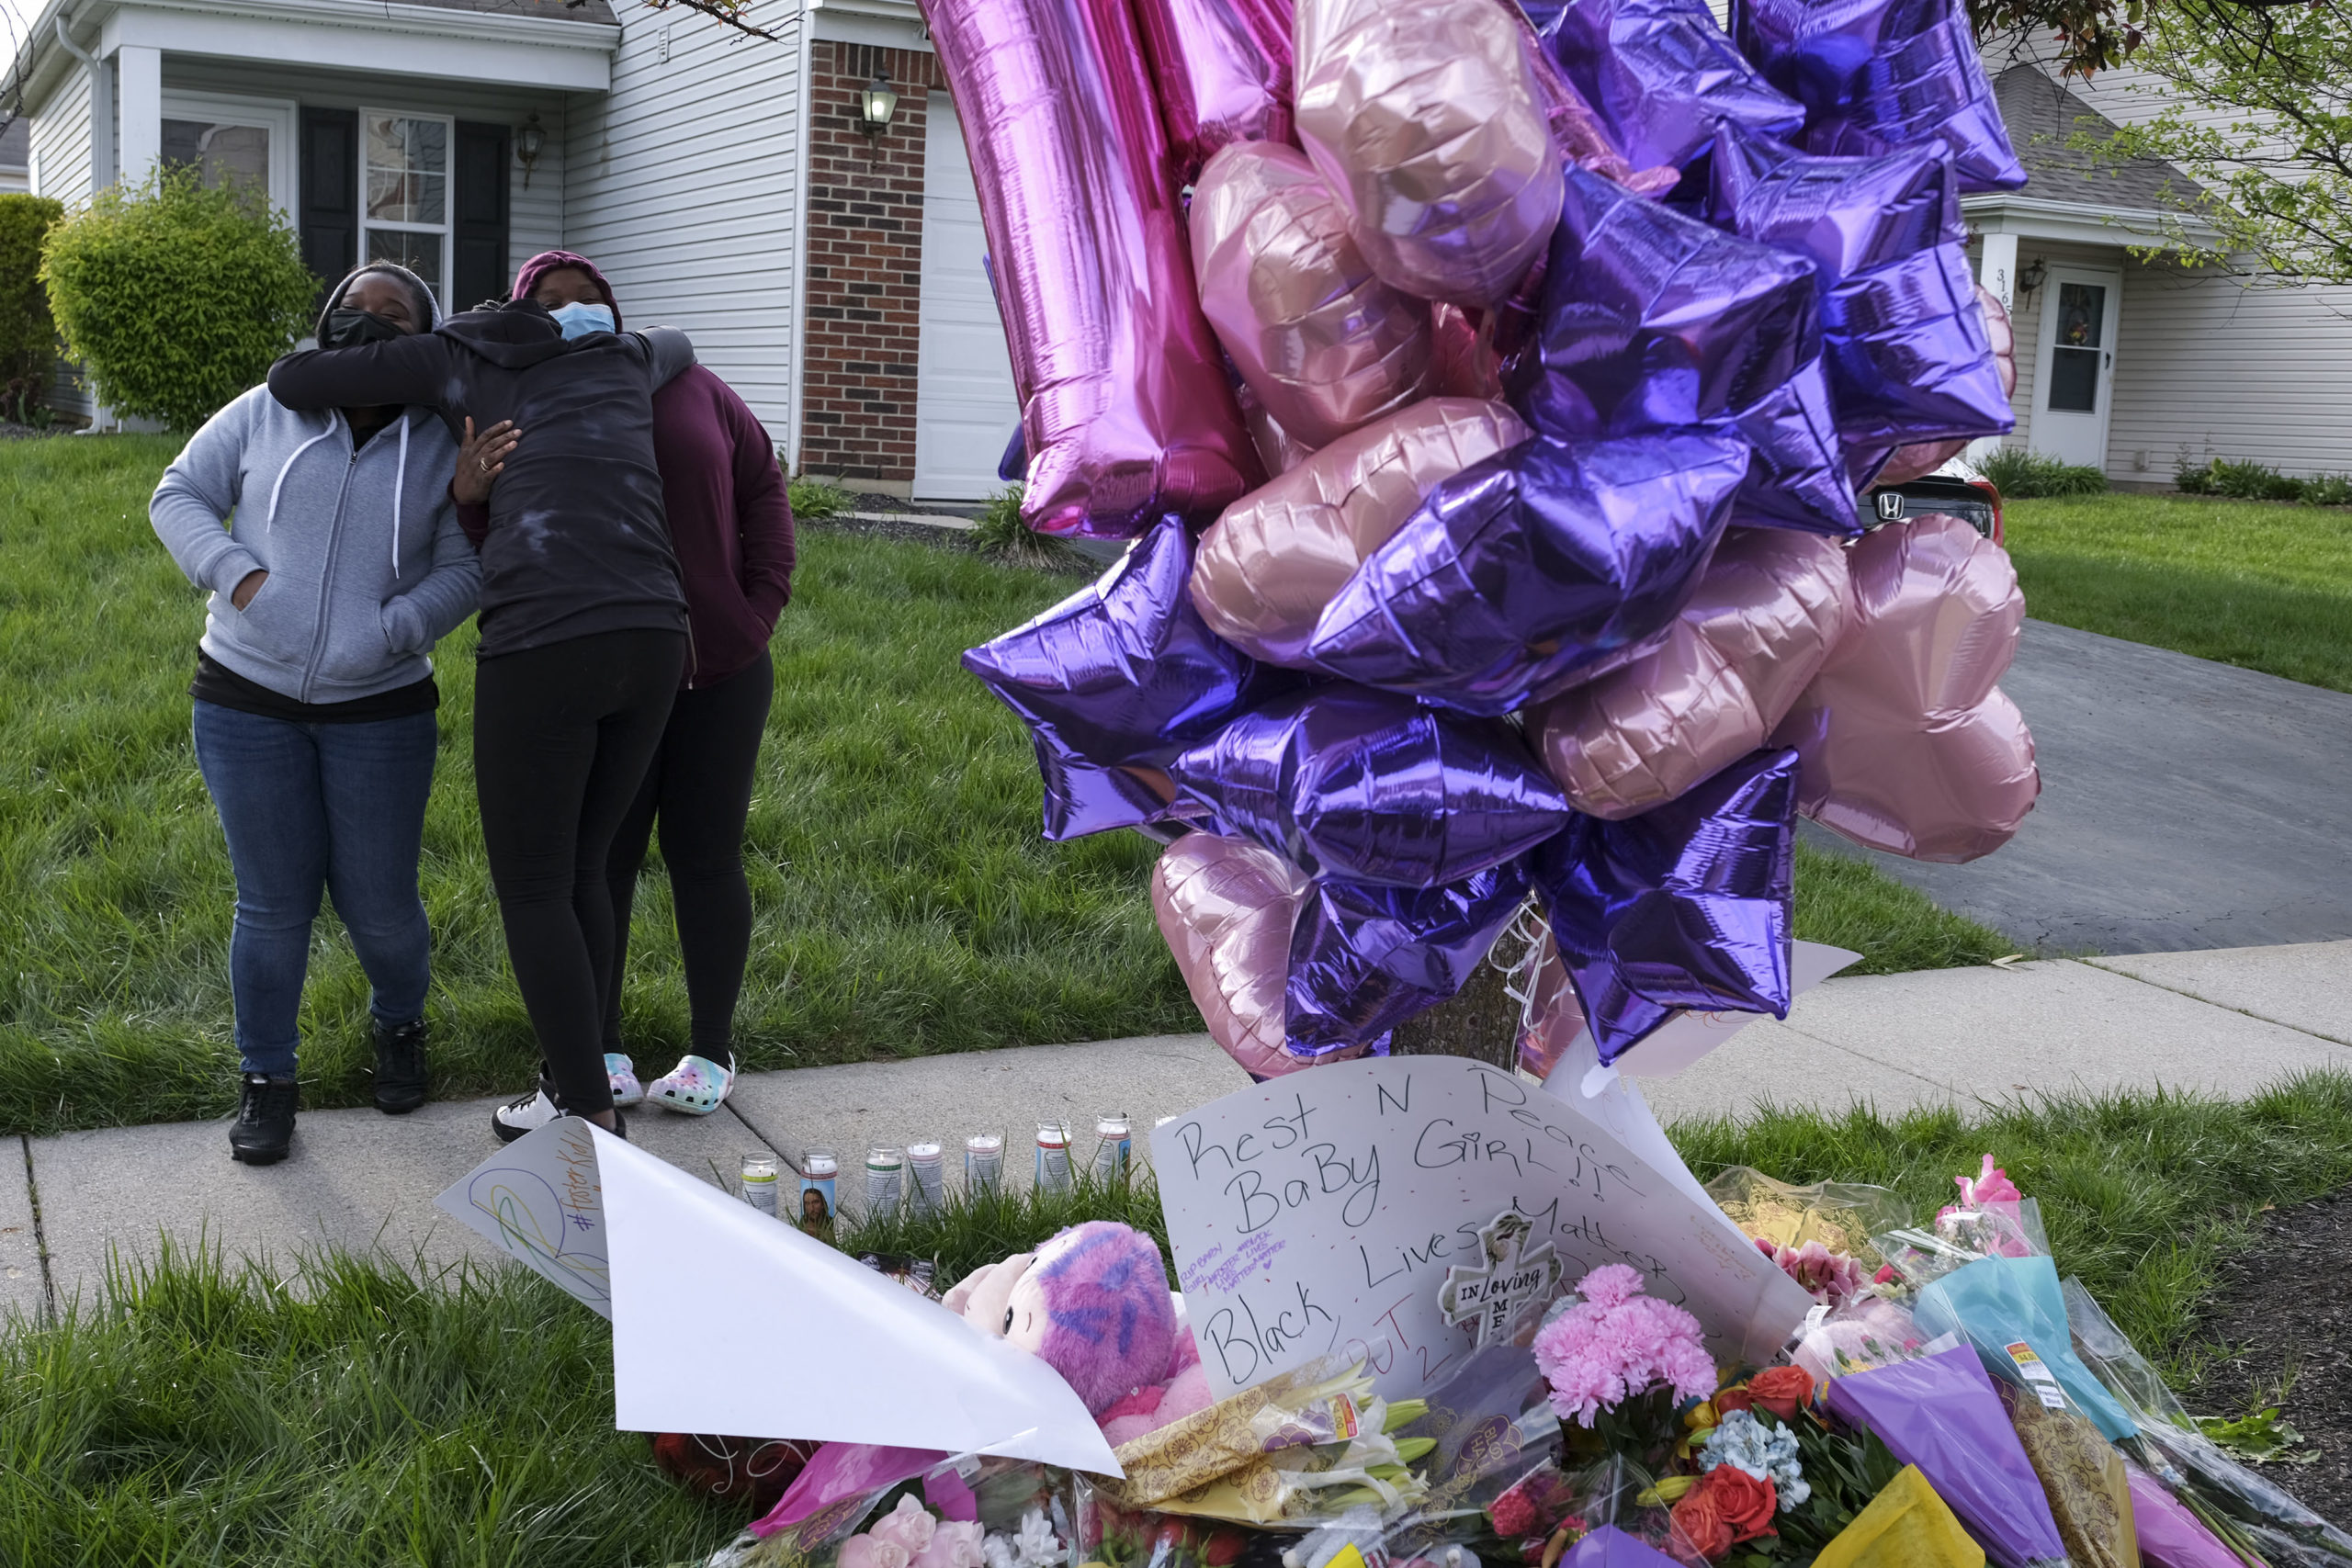 People gather around a pop-up memorial at the site where a Columbus Police Department officer shot and killed Ma'Khia Bryant, 16, in Columbus, Ohio on April 21, 2021. - Police in the US state of Ohio fatally shot a Black teenager who appeared to be lunging at another person with a knife, less than an hour before former officer Derek Chauvin was convicted of murdering George Floyd. The shooting occurred at a tense time with growing outrage against racial injustice and police brutality in the United States, and set off protests in the city of Columbus. (Photo by Jeff Dean / AFP) (Photo by JEFF DEAN/AFP via Getty Images)